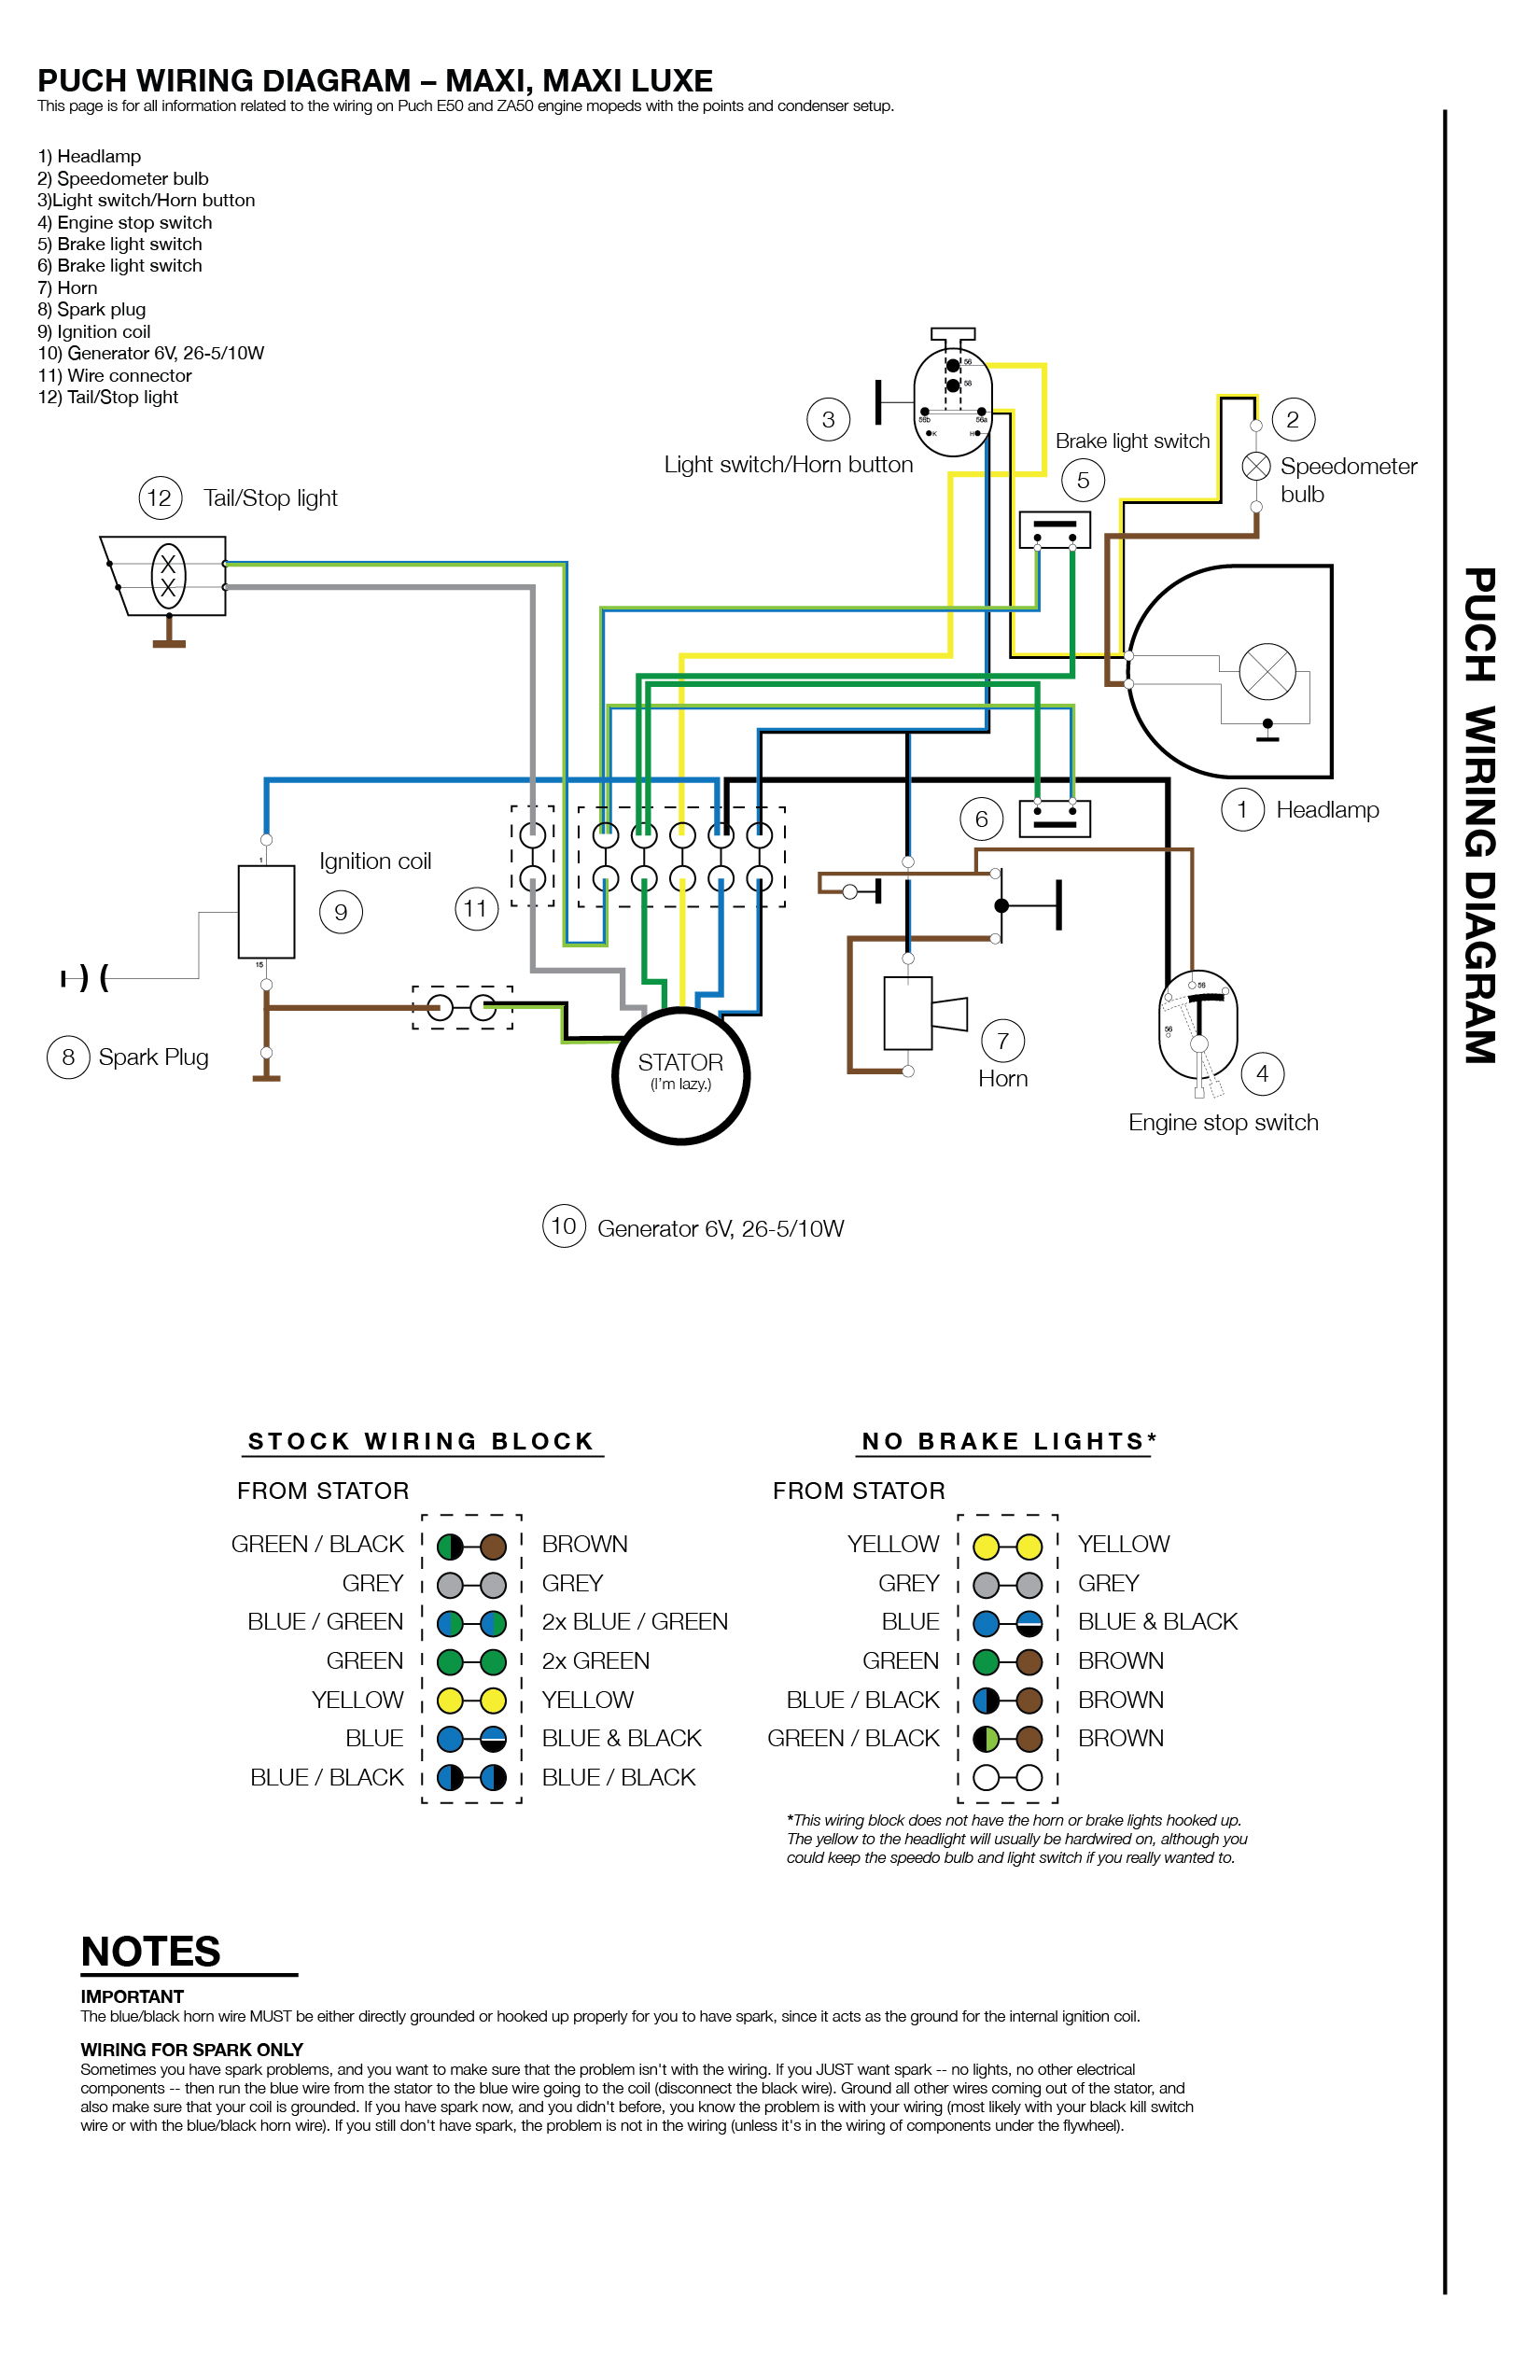 puch wiring moped wiki Brake Light Wiring Diagram